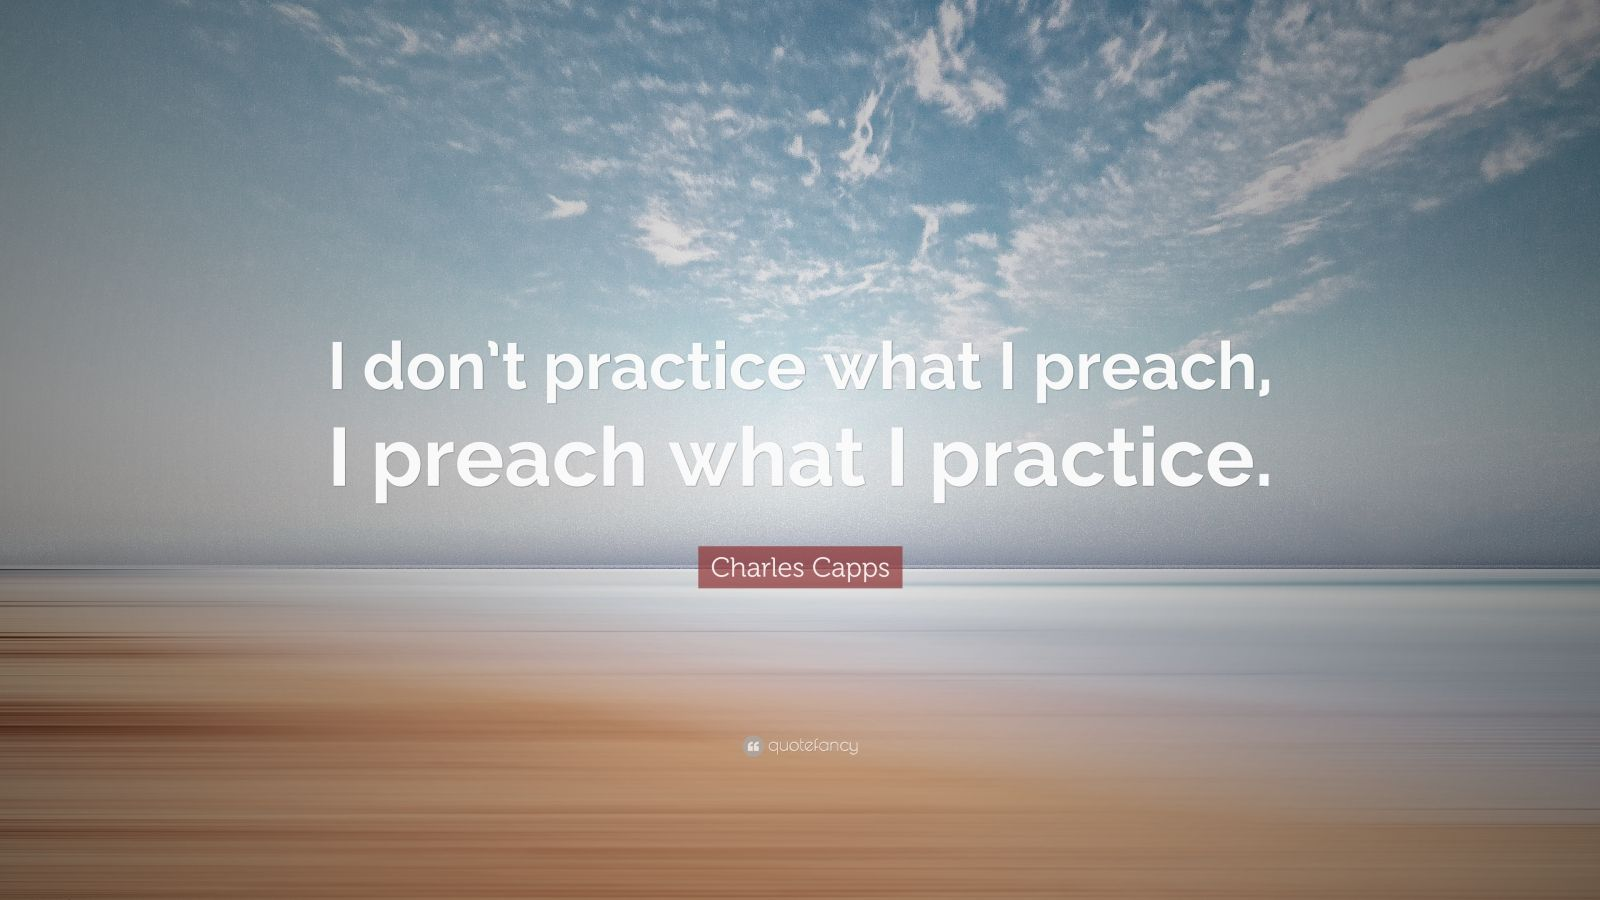 we should practice what we preach The phrase 'practice what you preach' means to behave the way you tell other people to behave example of use: other countries need to see that we practice what we preach when it comes to human rights.